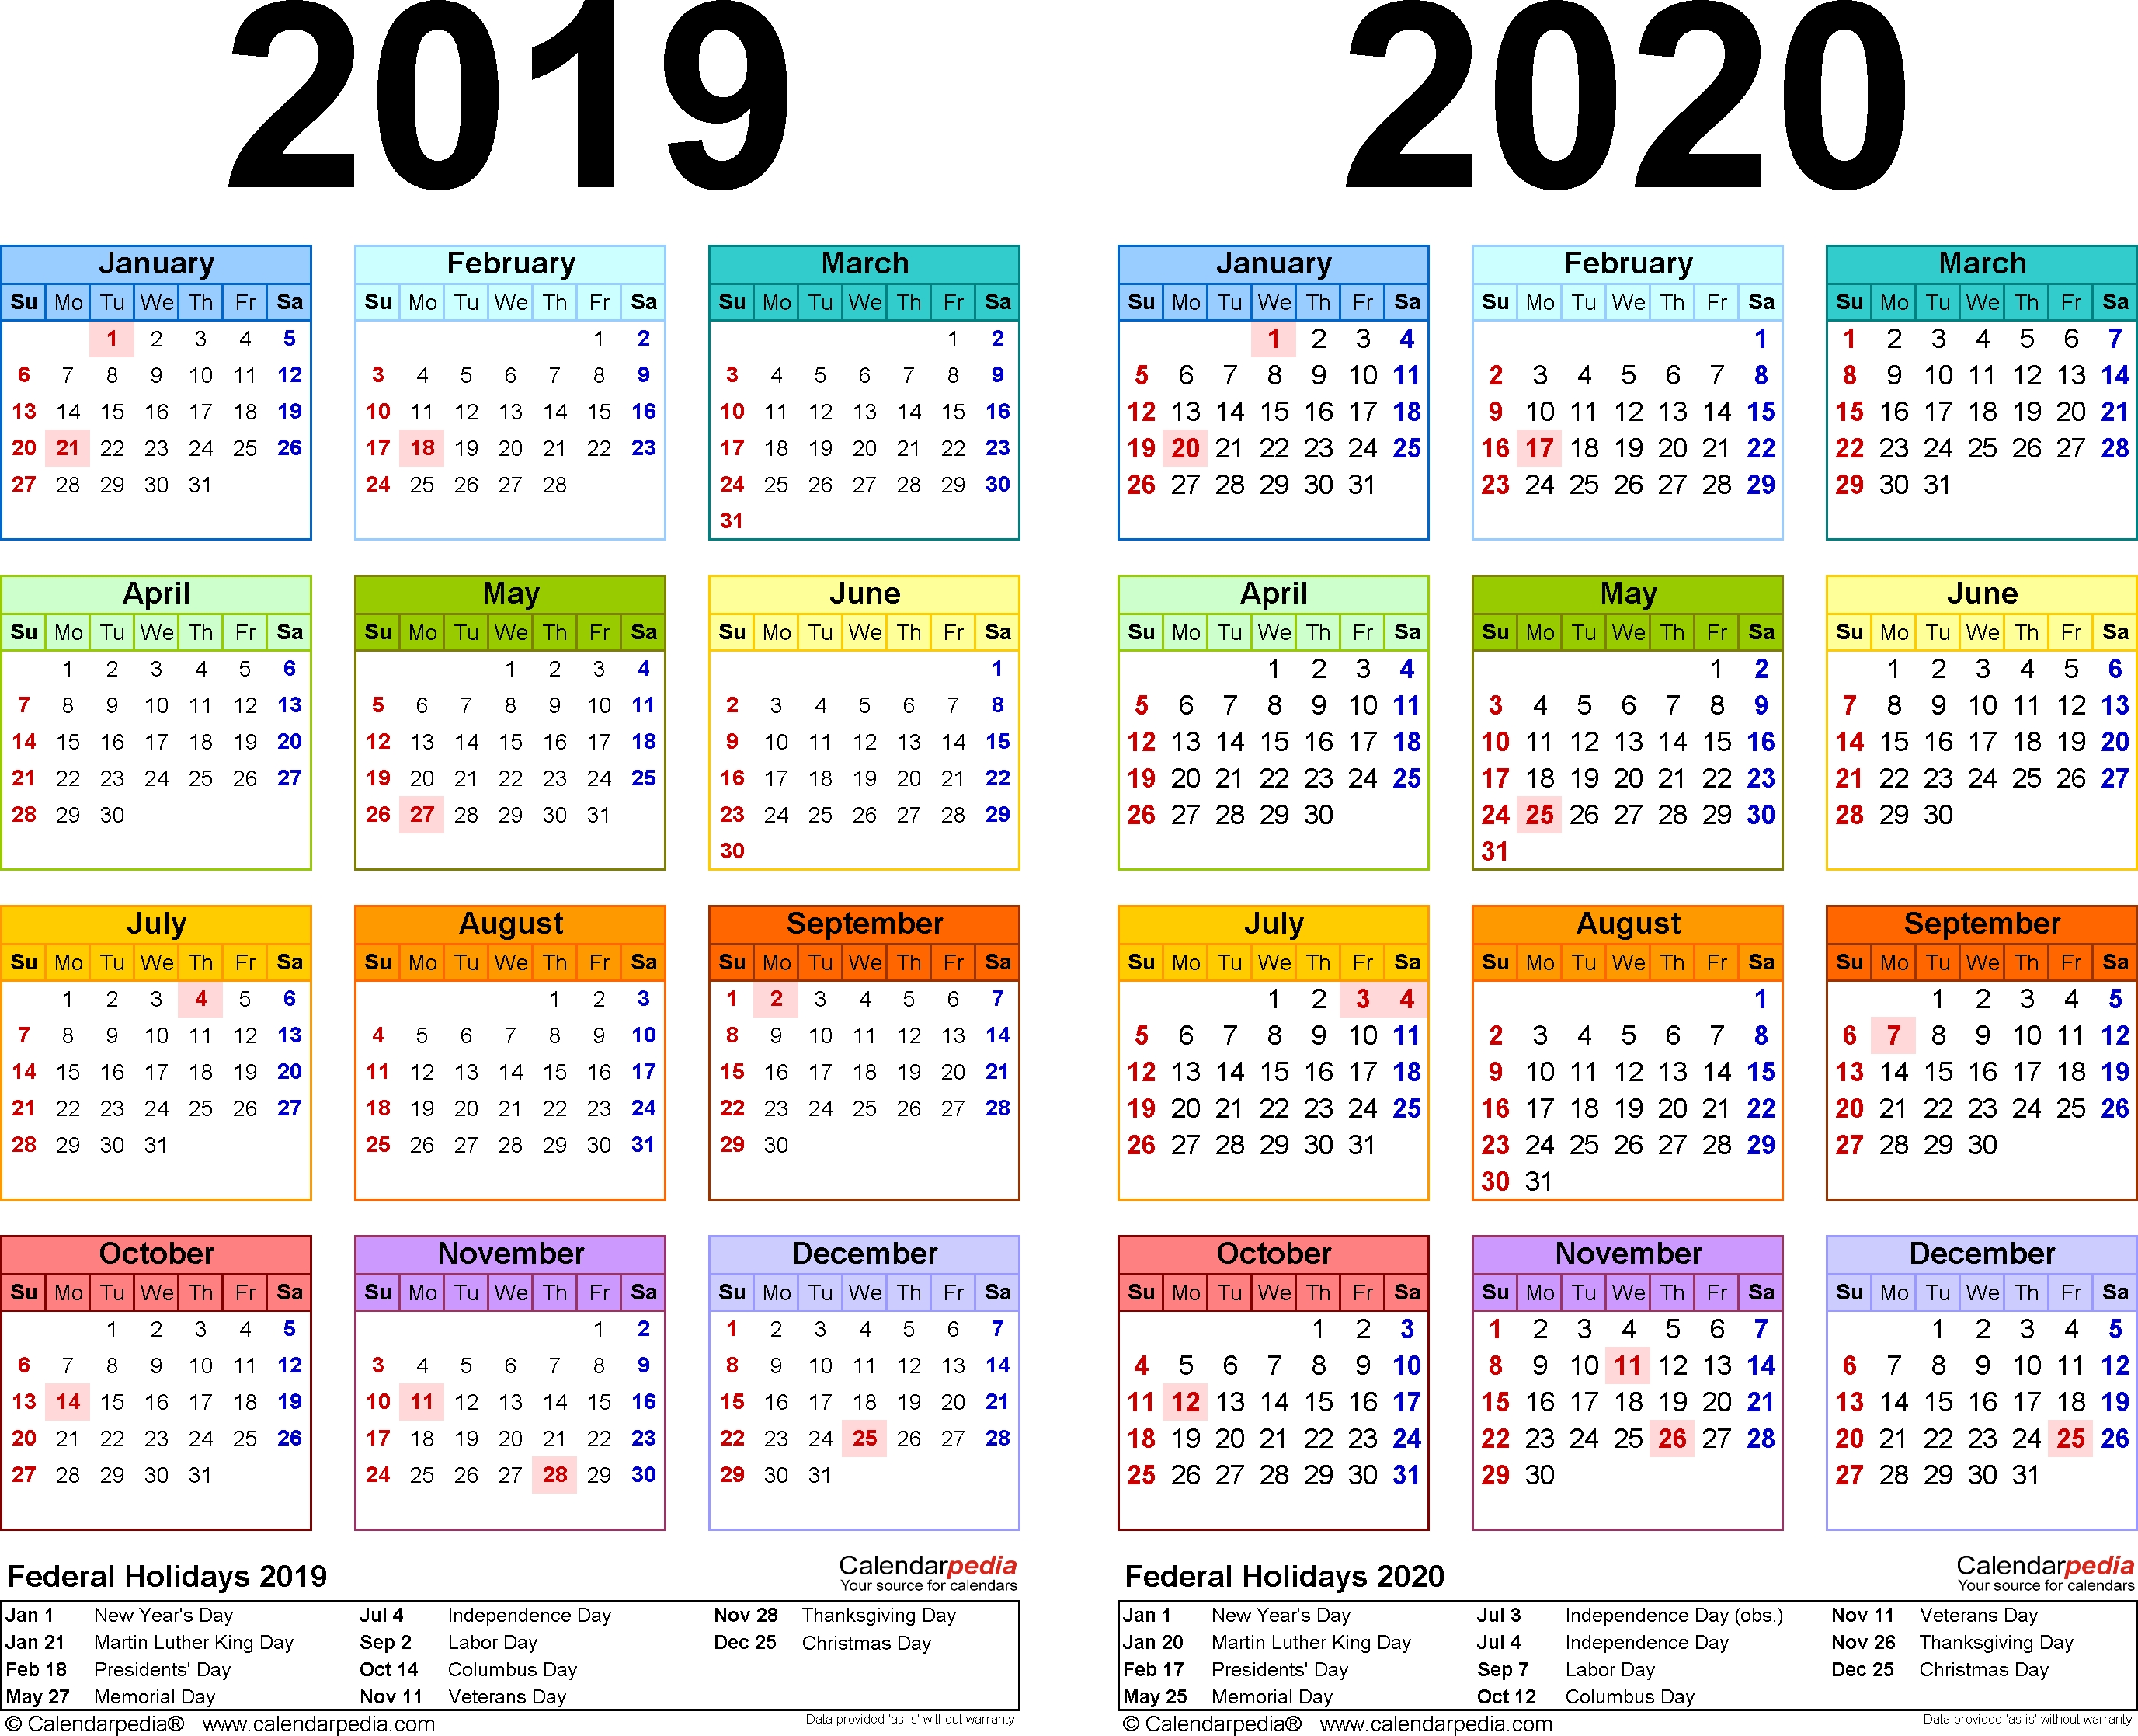 2019-2020 Calendar - Free Printable Two-Year Pdf Calendars throughout Printable 2019 2020 Calendar Pdf